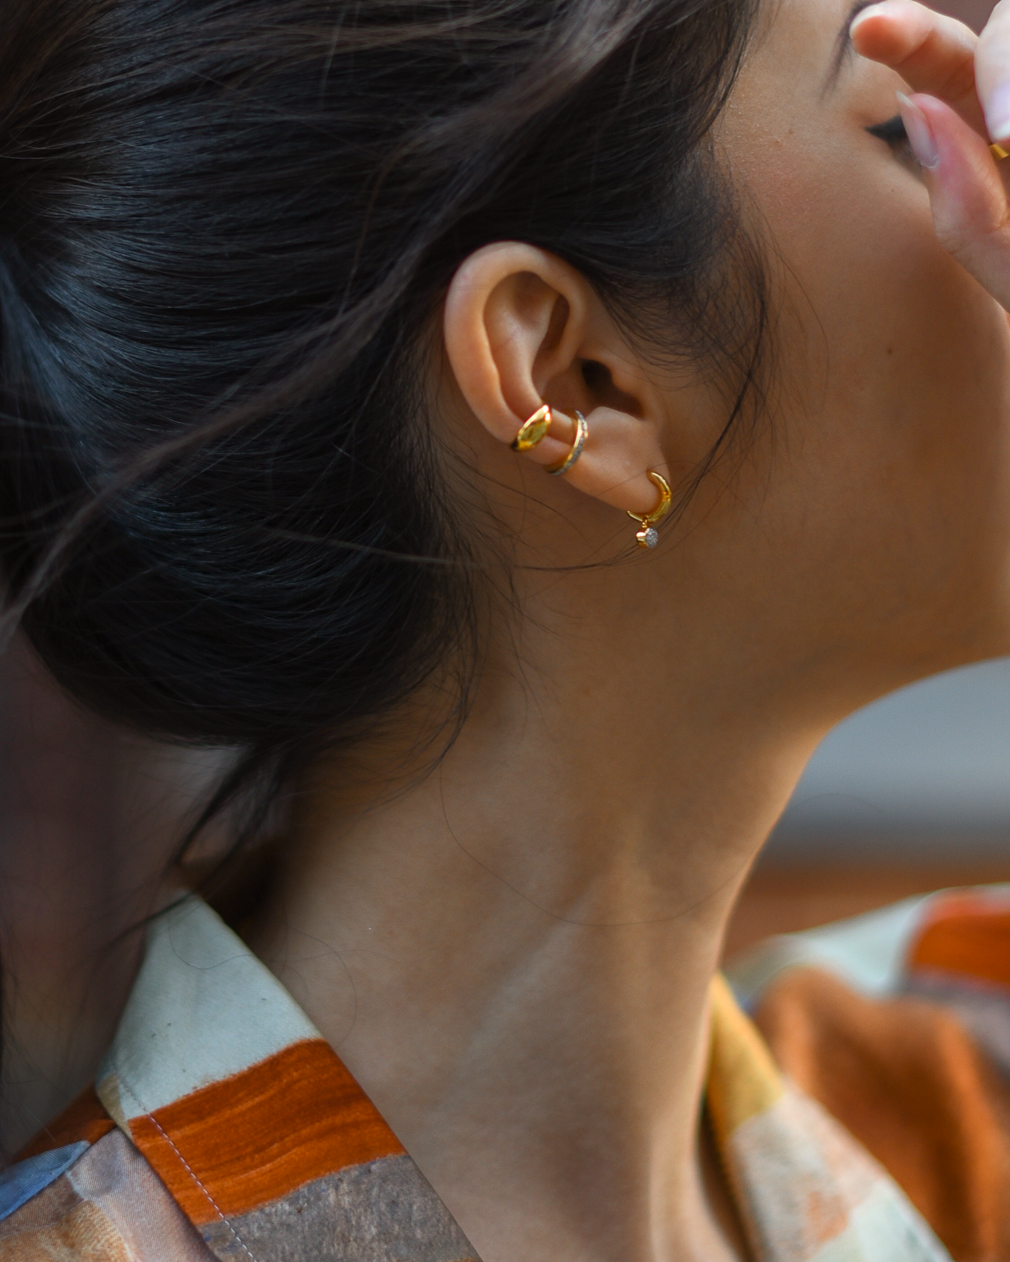 Aritzia Aries button up, gold tone jewelry, summer outfit ideas, rustic orange shirt, New York casual style, Monica Vinader gold earrings and ear cuff - FOREVERVANNY.com